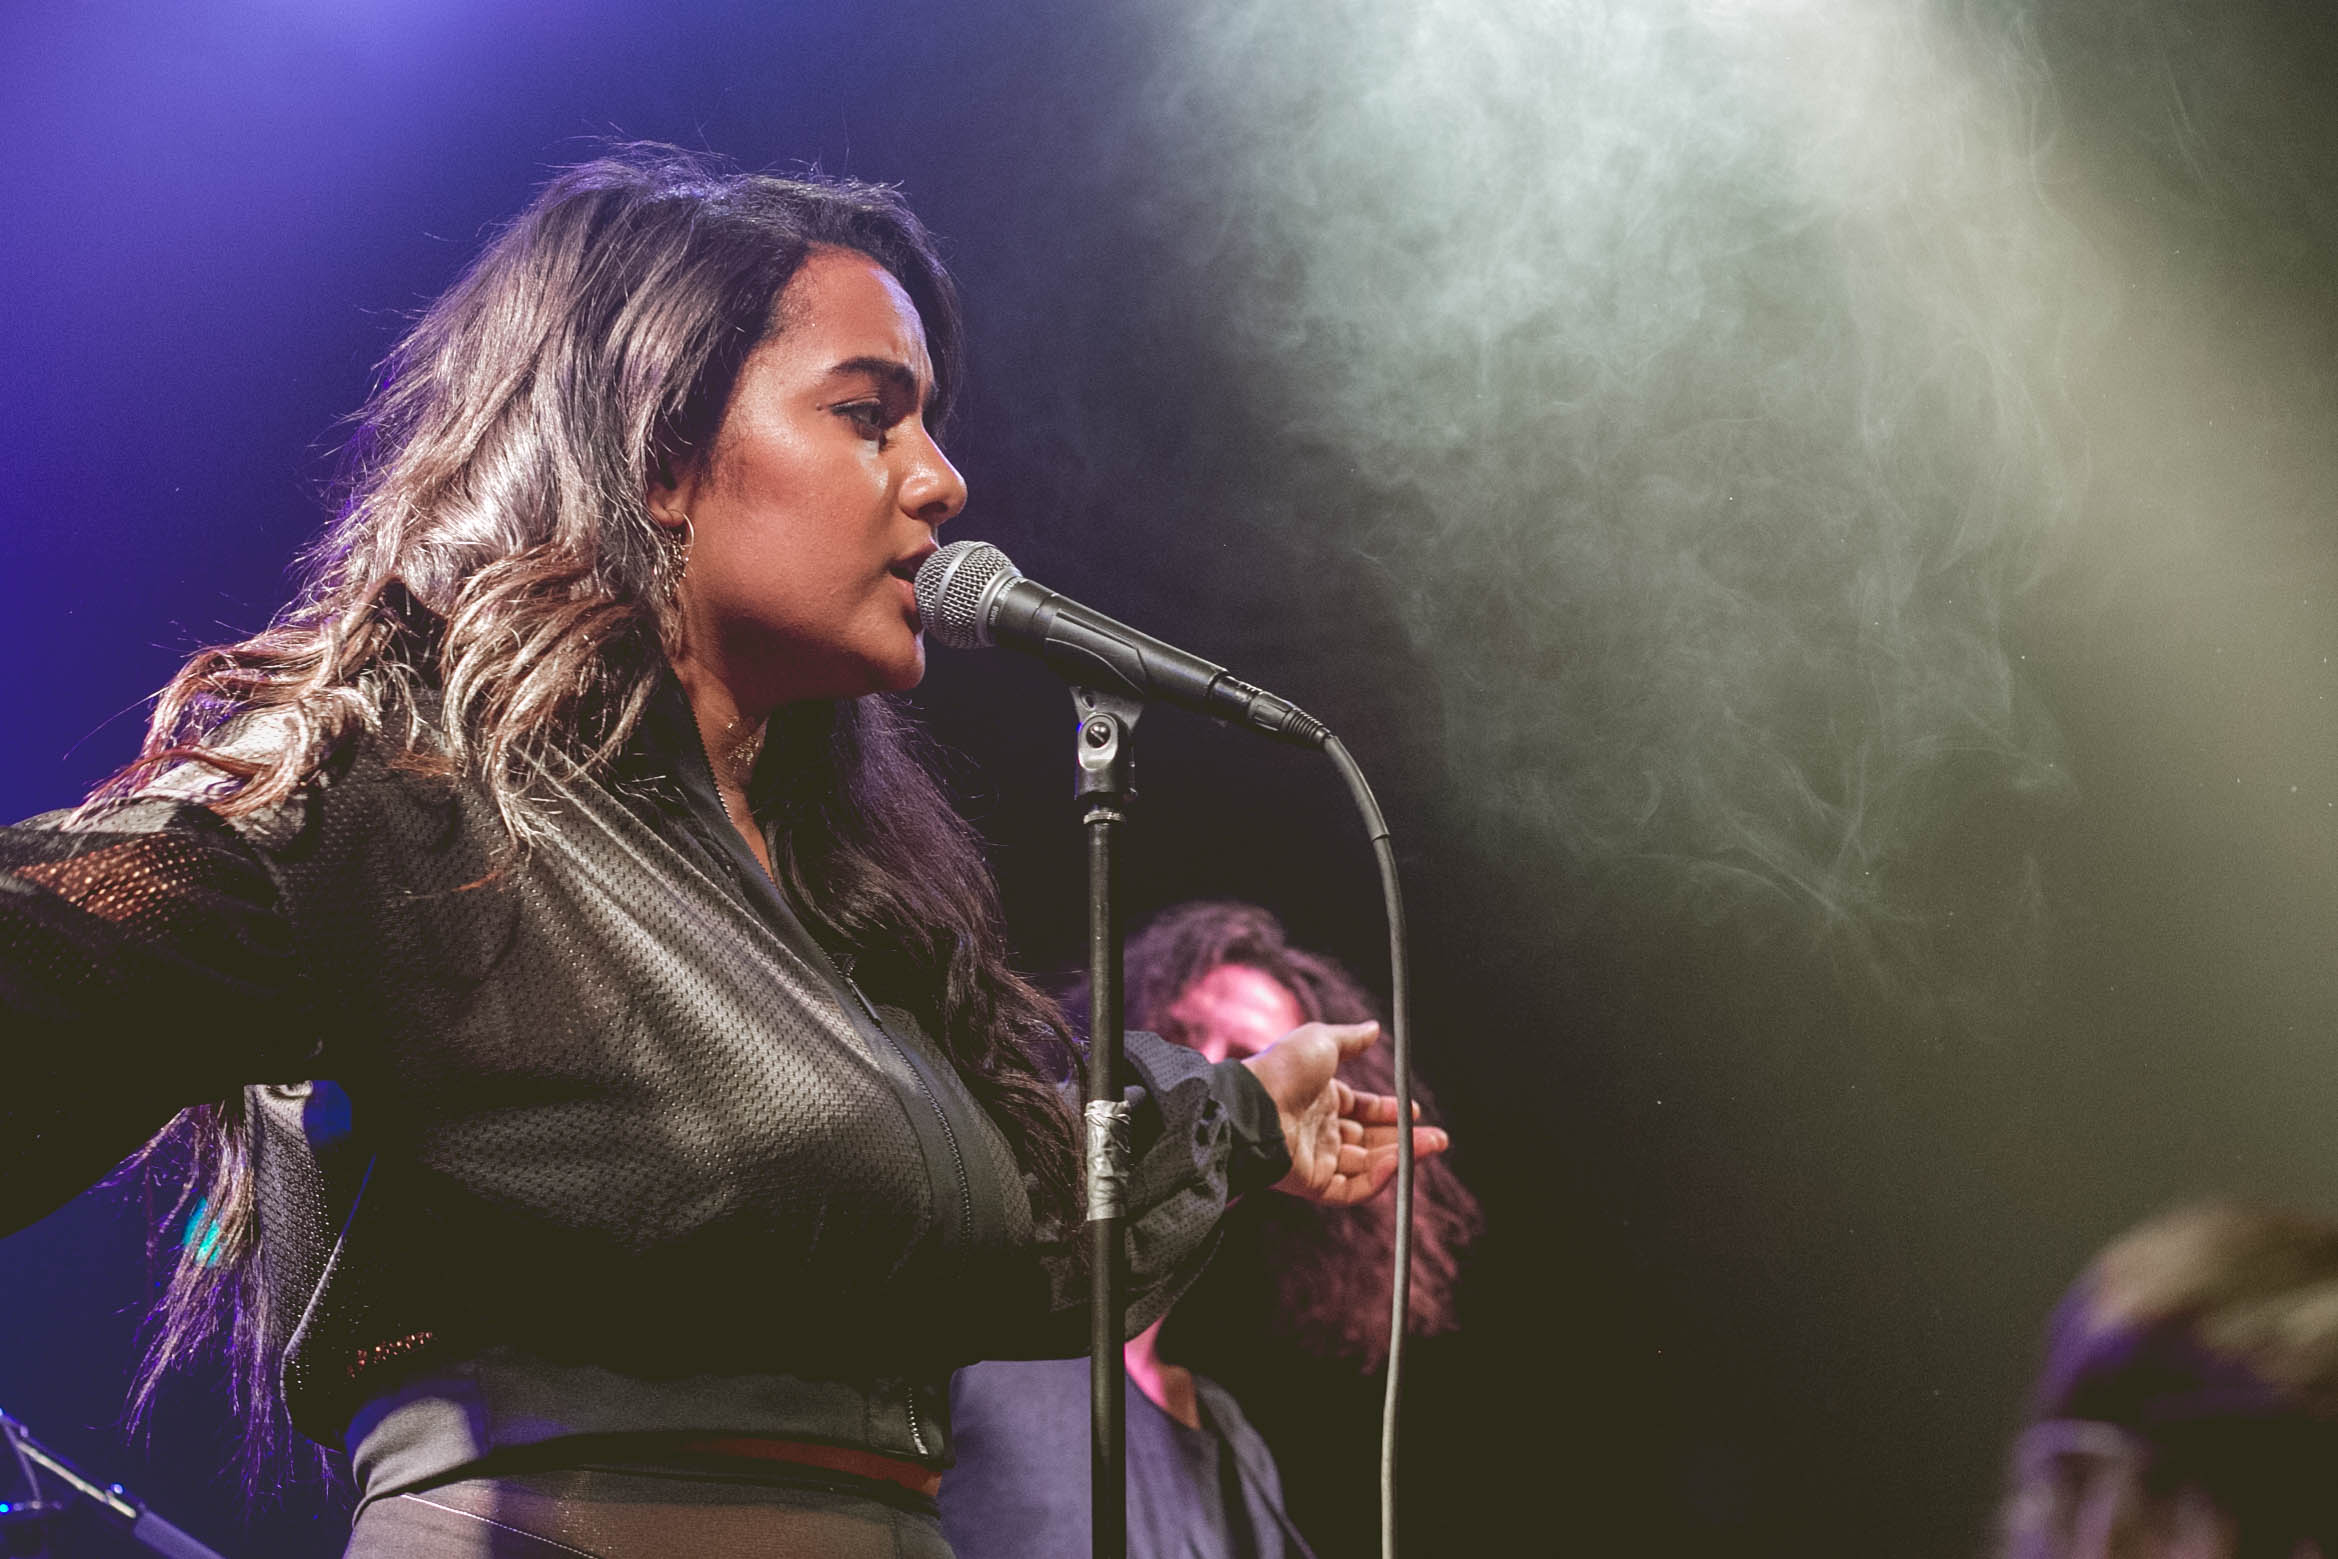 Bibi Bourelly @ Bootleg Theater 11/12/16.Photo by Hector Vergara (@theHextron) for www.BlurredCulture.com. This photo was obtained under the express authorization and license by Red Bull Media House North America, Inc.